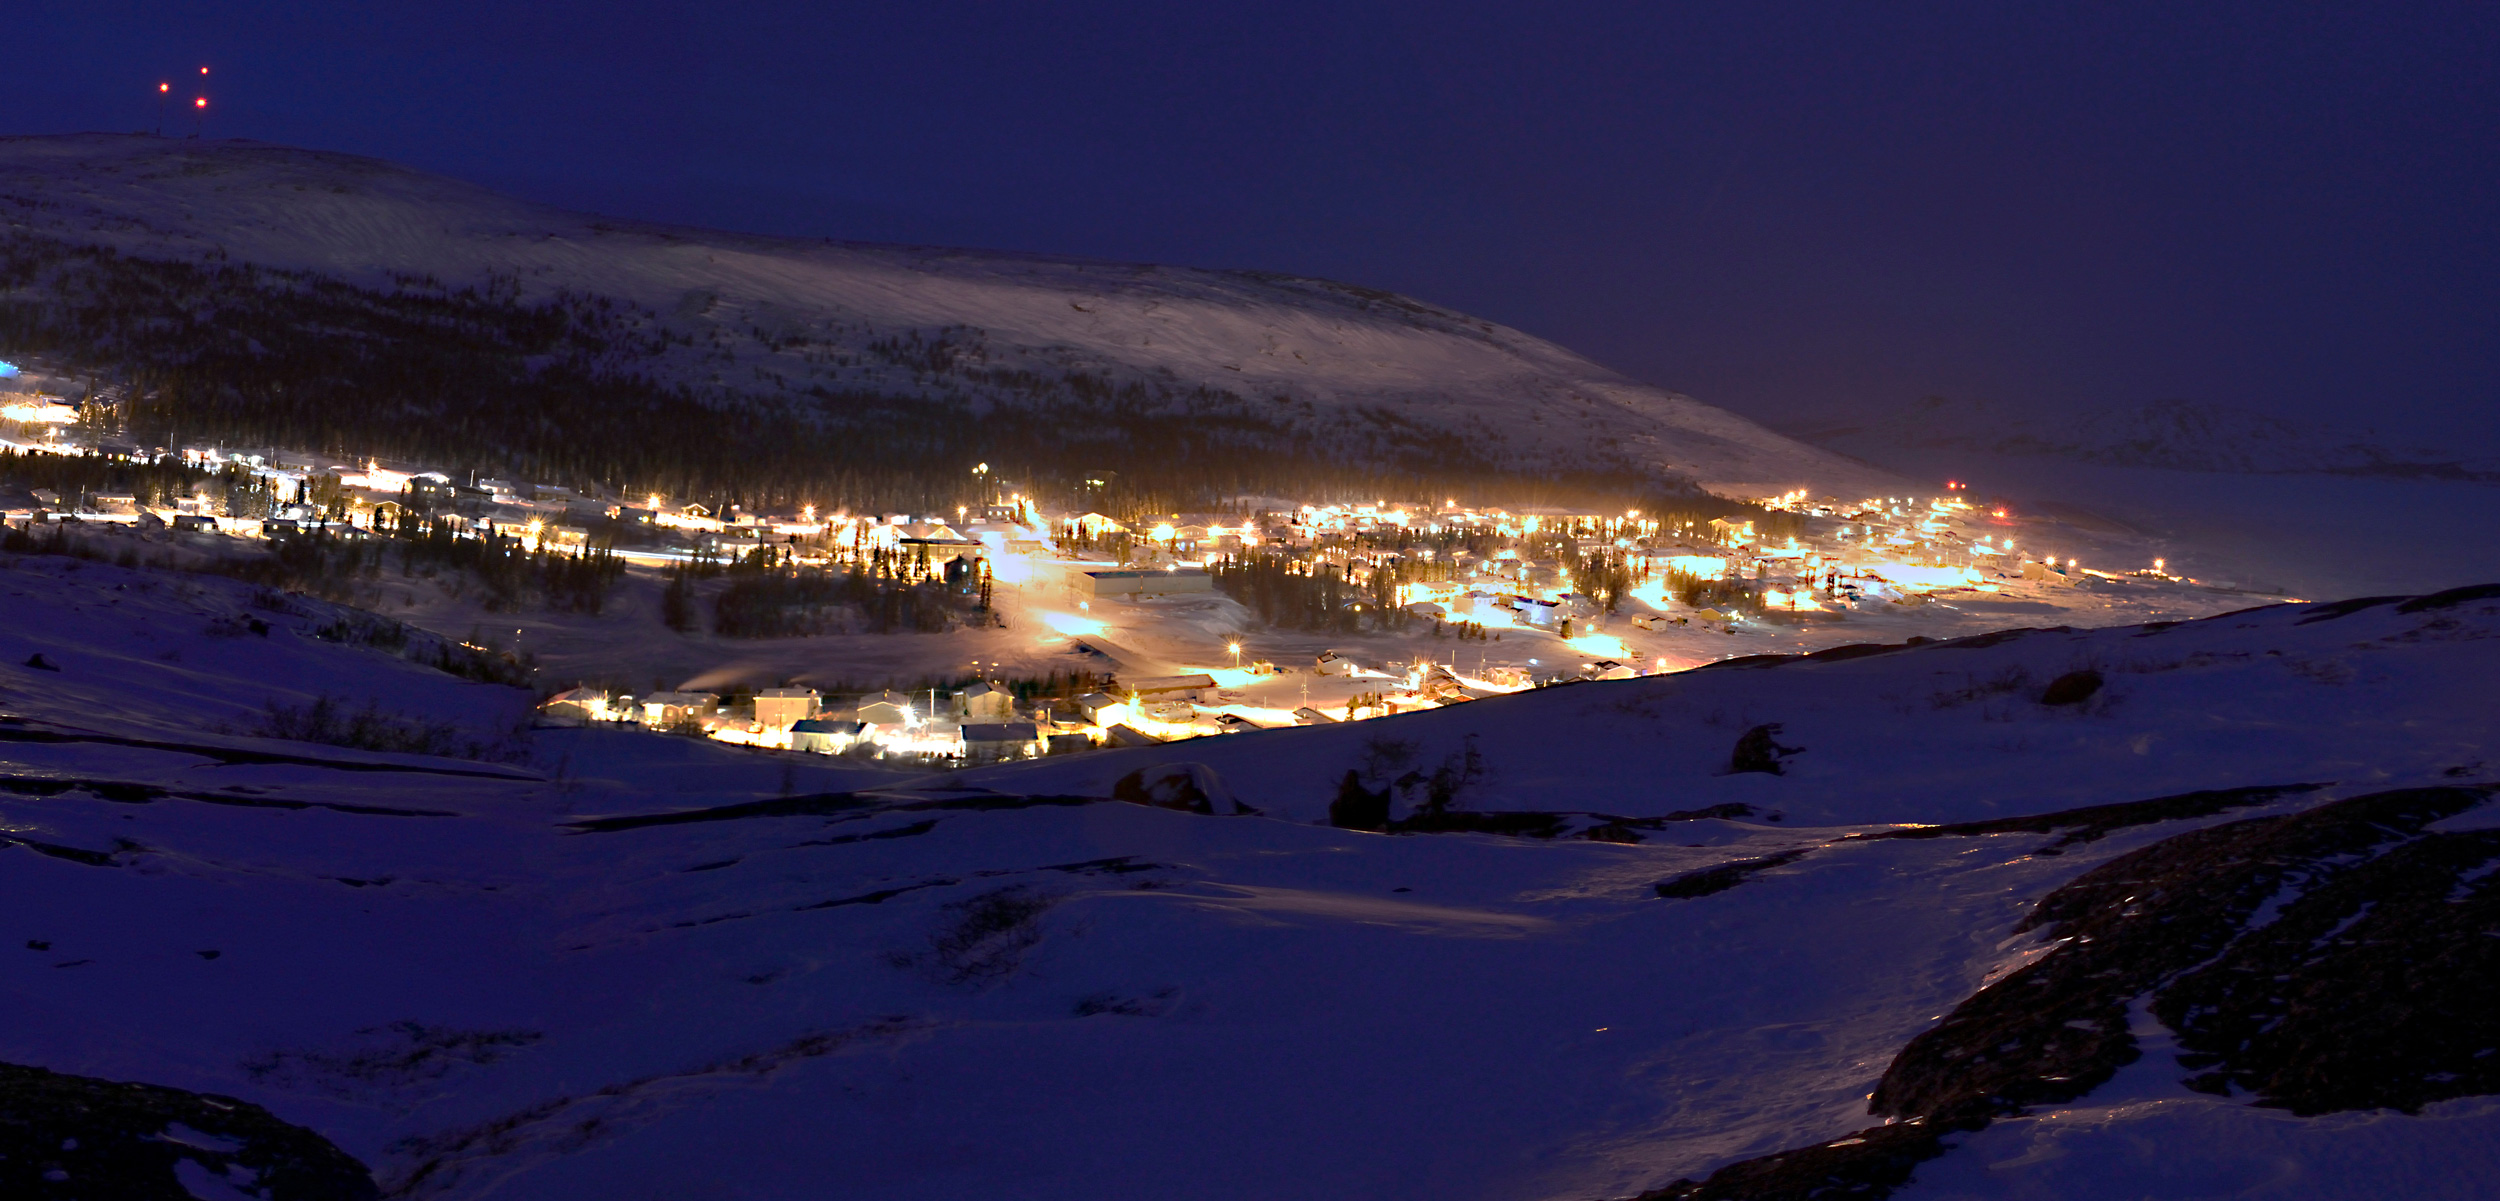 In Nain, a coastal village in Newfoundland and Labrador, the approximately 1,400 residents rely on sea ice for transportation and traditional activities. Photo by Master Corporal Robert LeBlanc, 5th Canadian Division Public Affairs